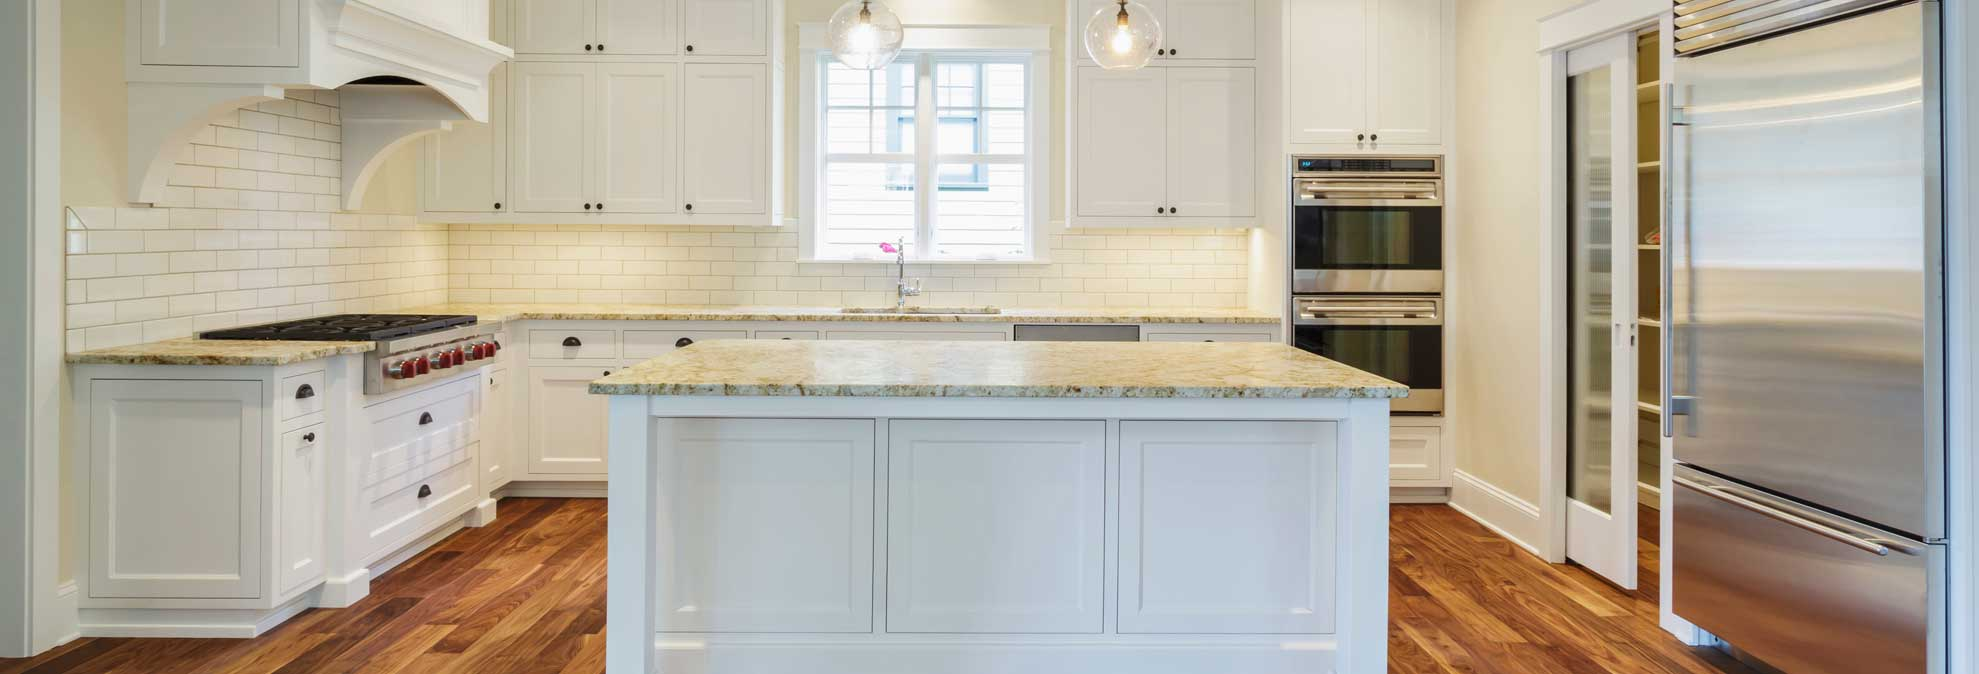 Kitchen remodel mistakes that will bust your budget for Kitchen redesign